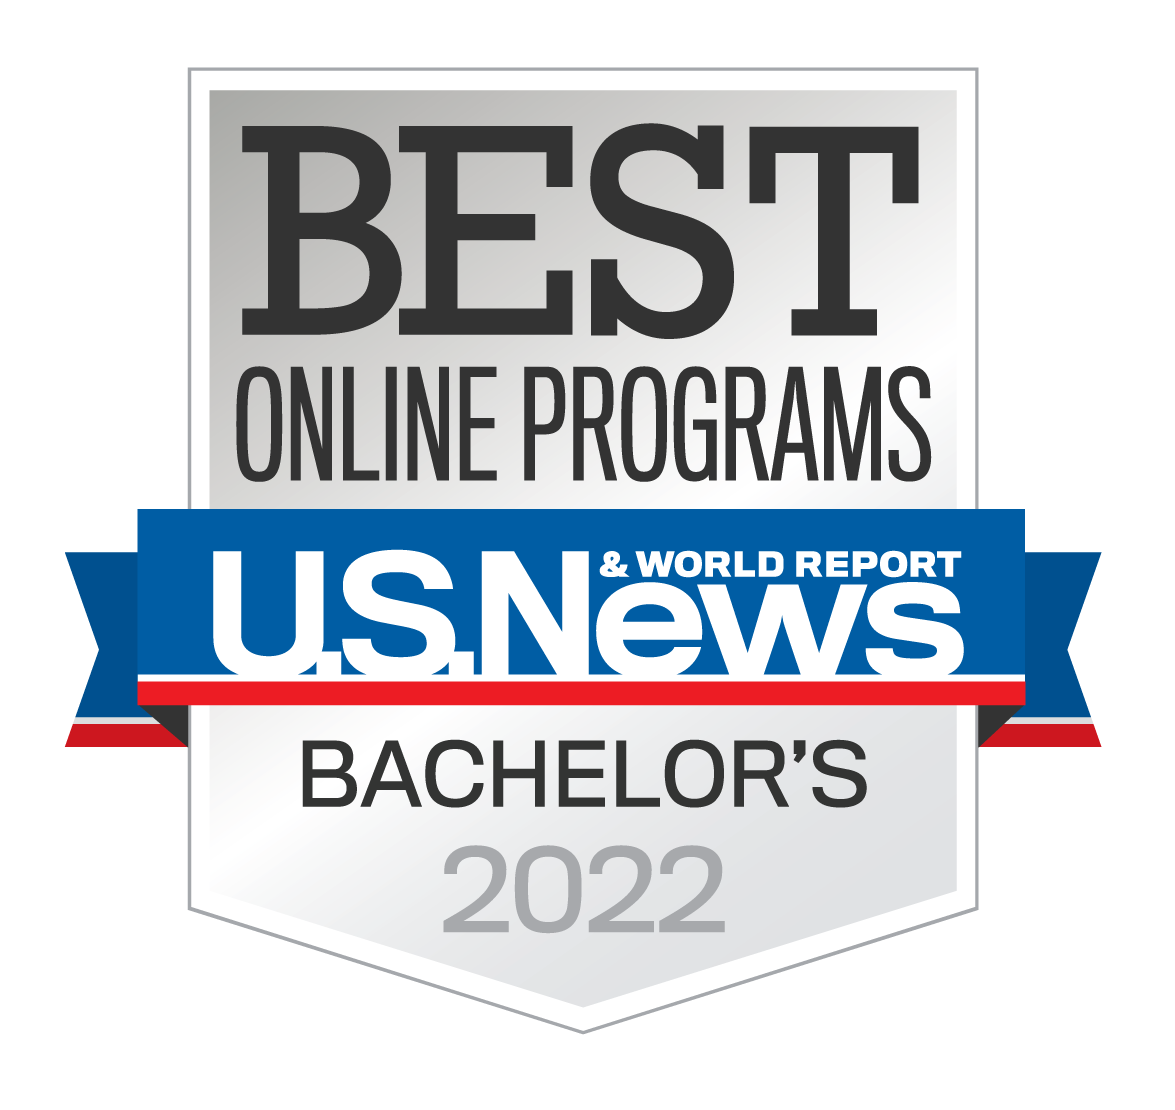 Best Online Programs Bachelors - U.S. News & World Report 2021